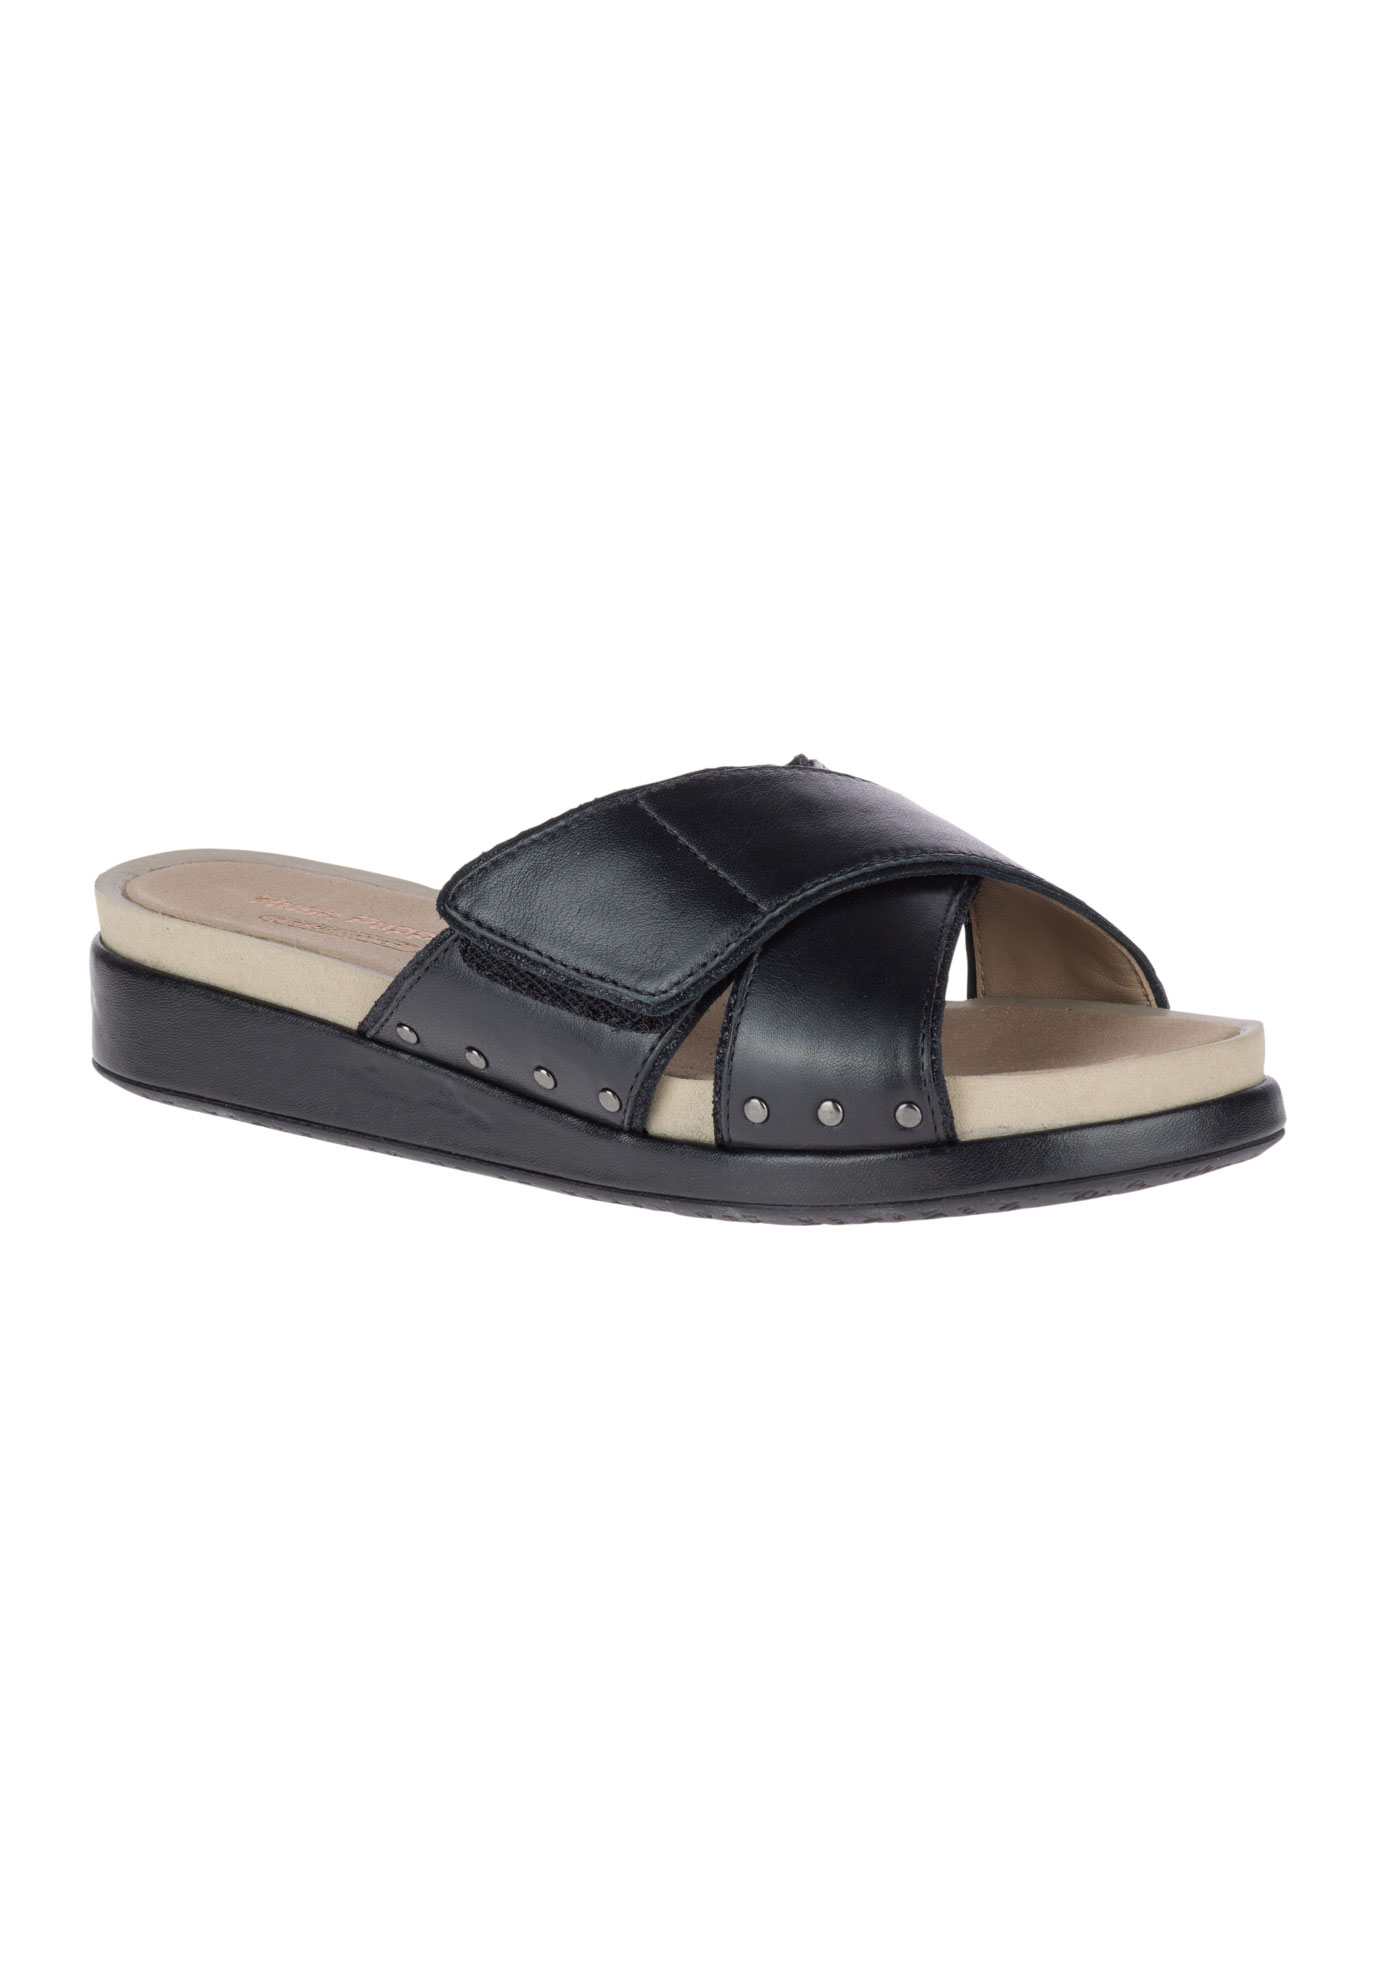 Chrysta Xband Slide Sandals By Hush Puppies Plus Size Slides